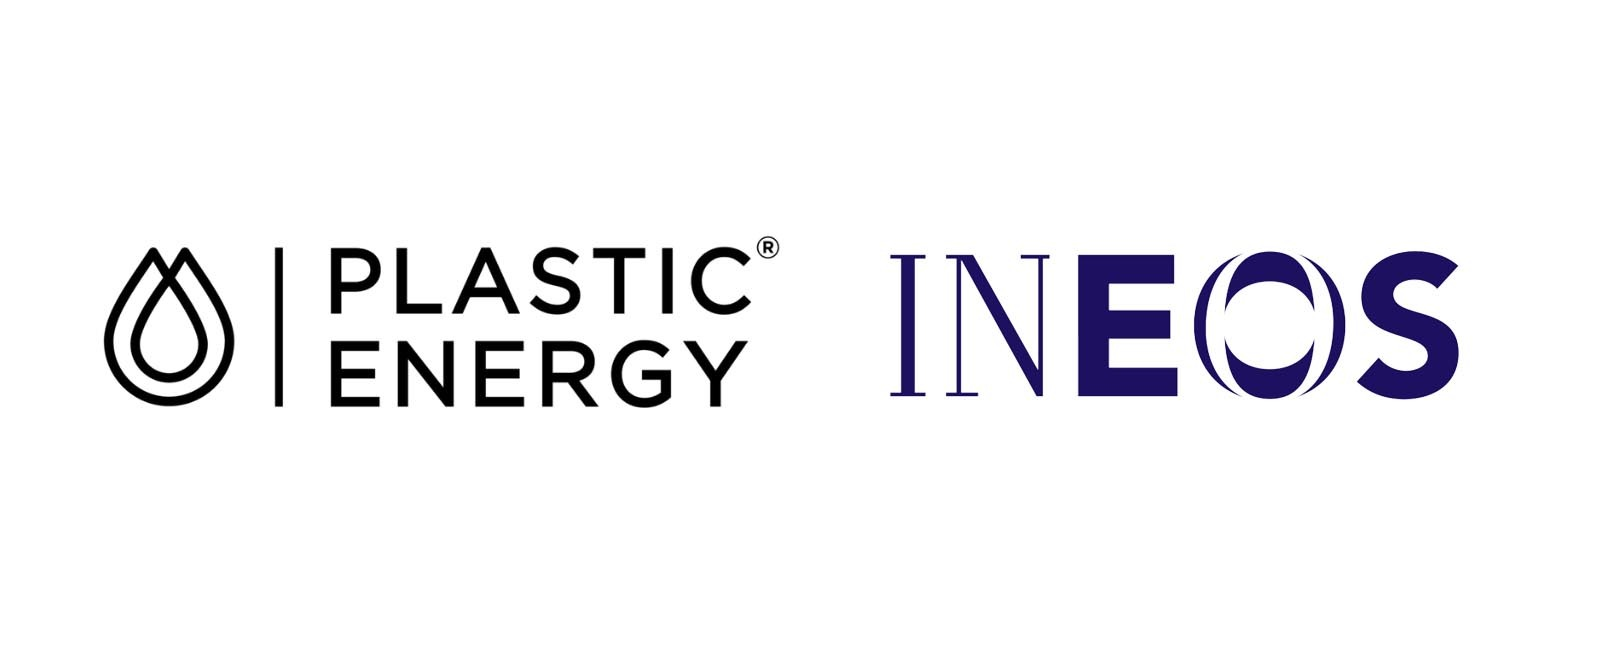 INEOS and PLASTIC ENERGY to collaborate on new advanced plastic recycling facility.